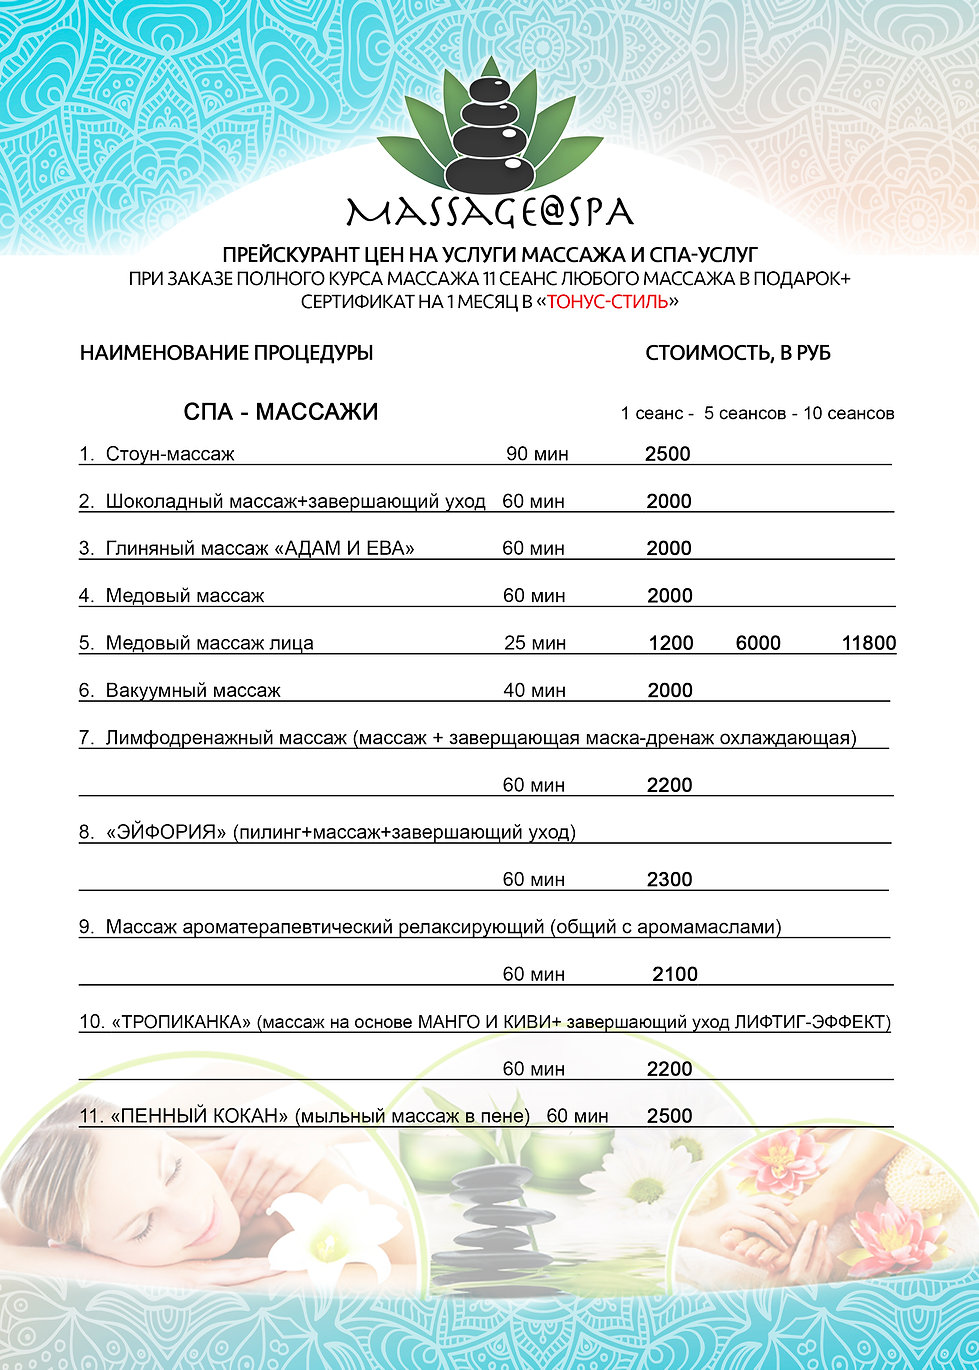 СПА - МАССАЖИ MASSAGE_SPA nt.jpg